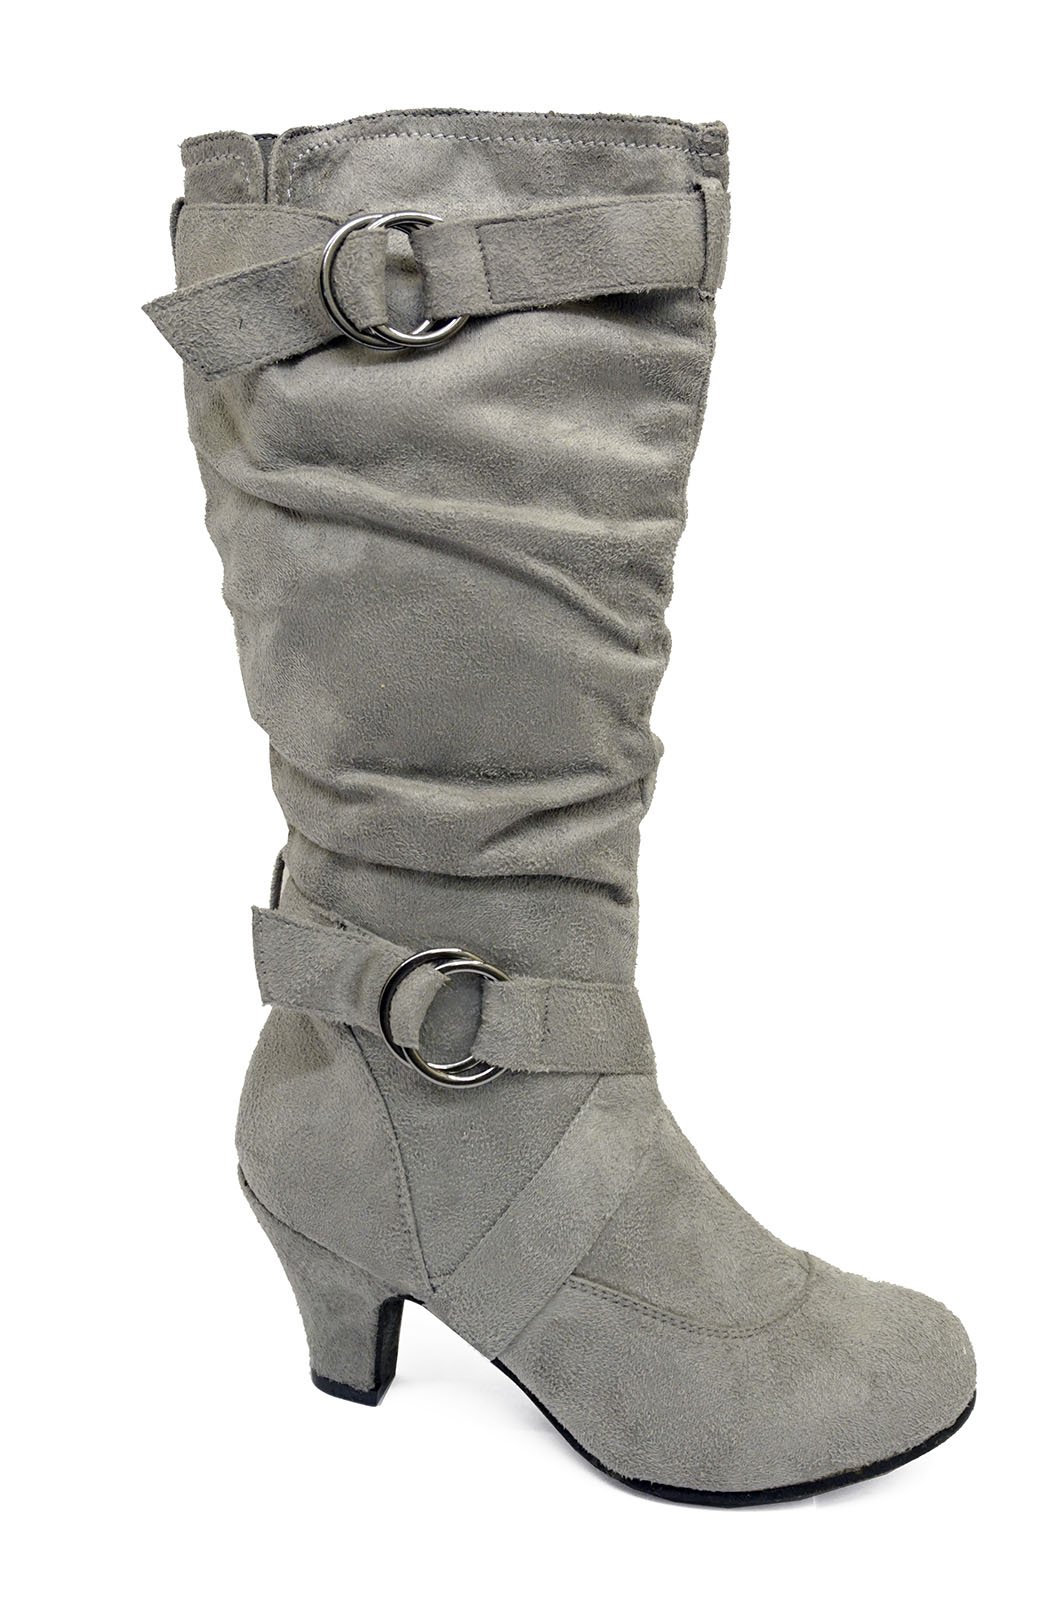 LADIES-GREY-ZIP-UP-BIKER-SLOUCH-RUCHED-TALL-KNEE-CALF-LOW-HEEL-BOOTS-SHOES-4-10 thumbnail 5